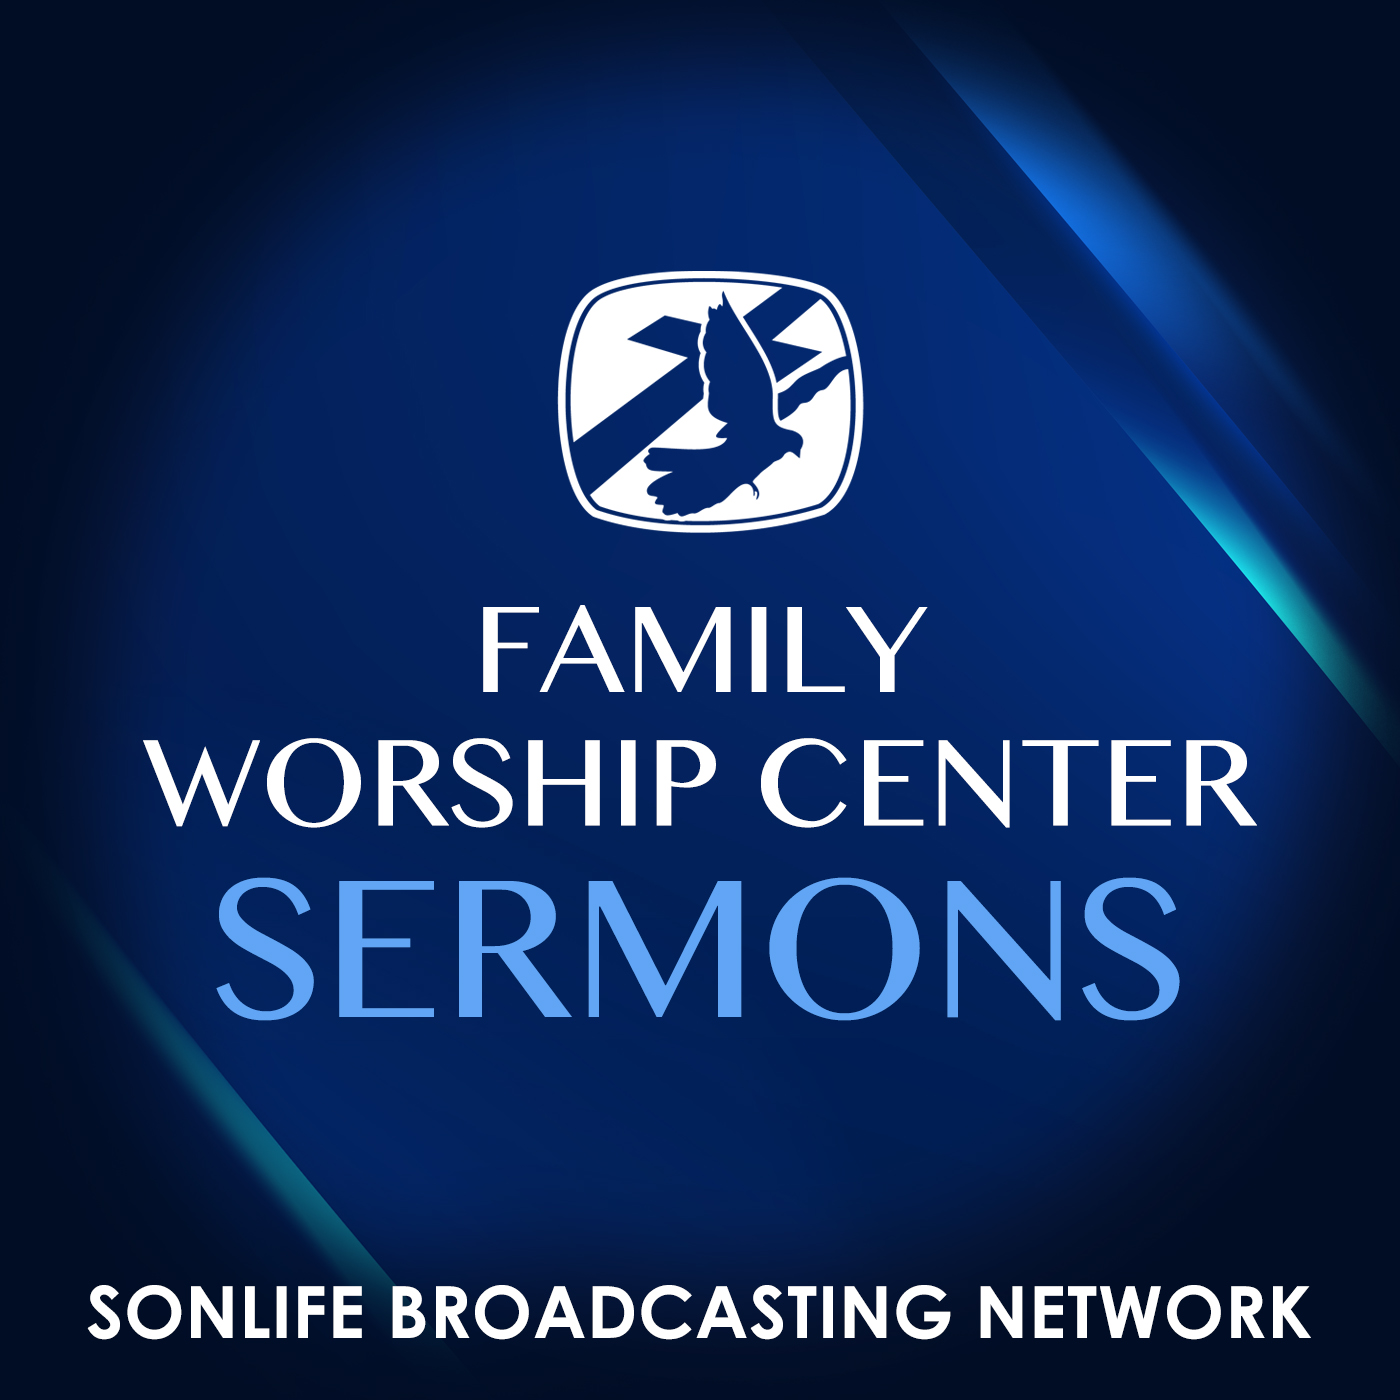 Family Worship Center - Sonlife Broadcasting Network